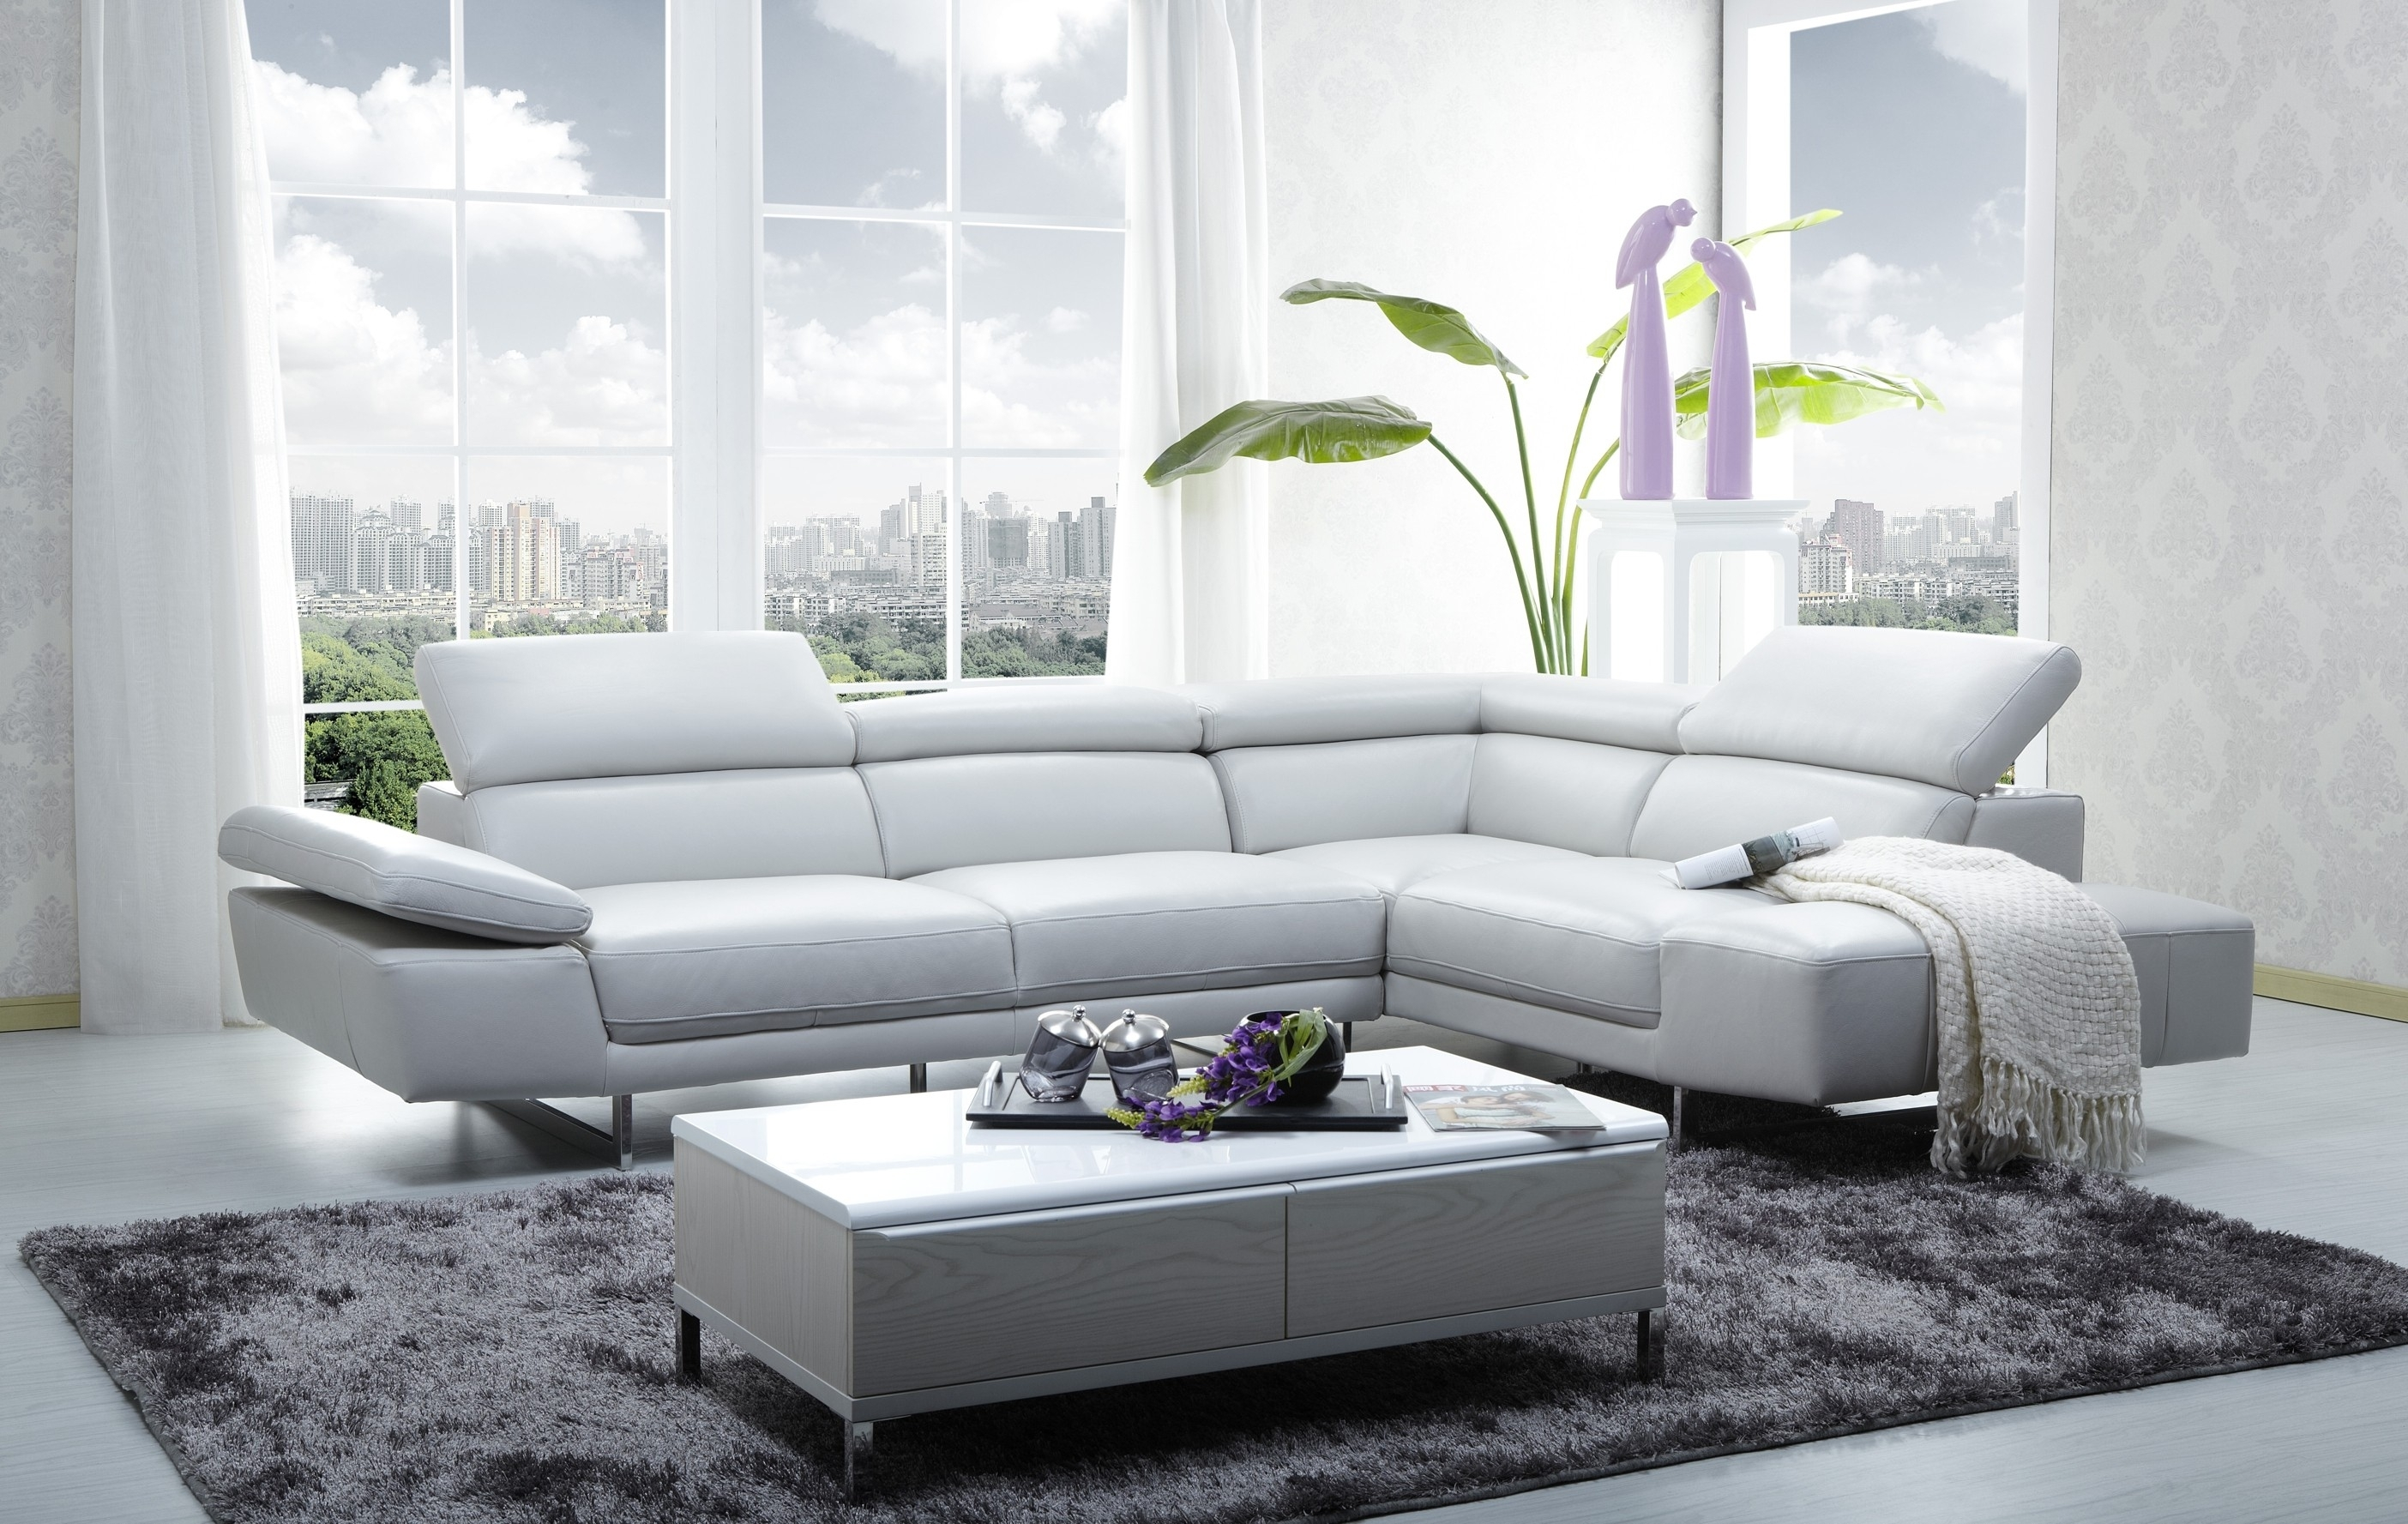 1717 Italian Leather Modern Sectional Sofa Pertaining To Sectional Sofas In Stock (View 1 of 10)